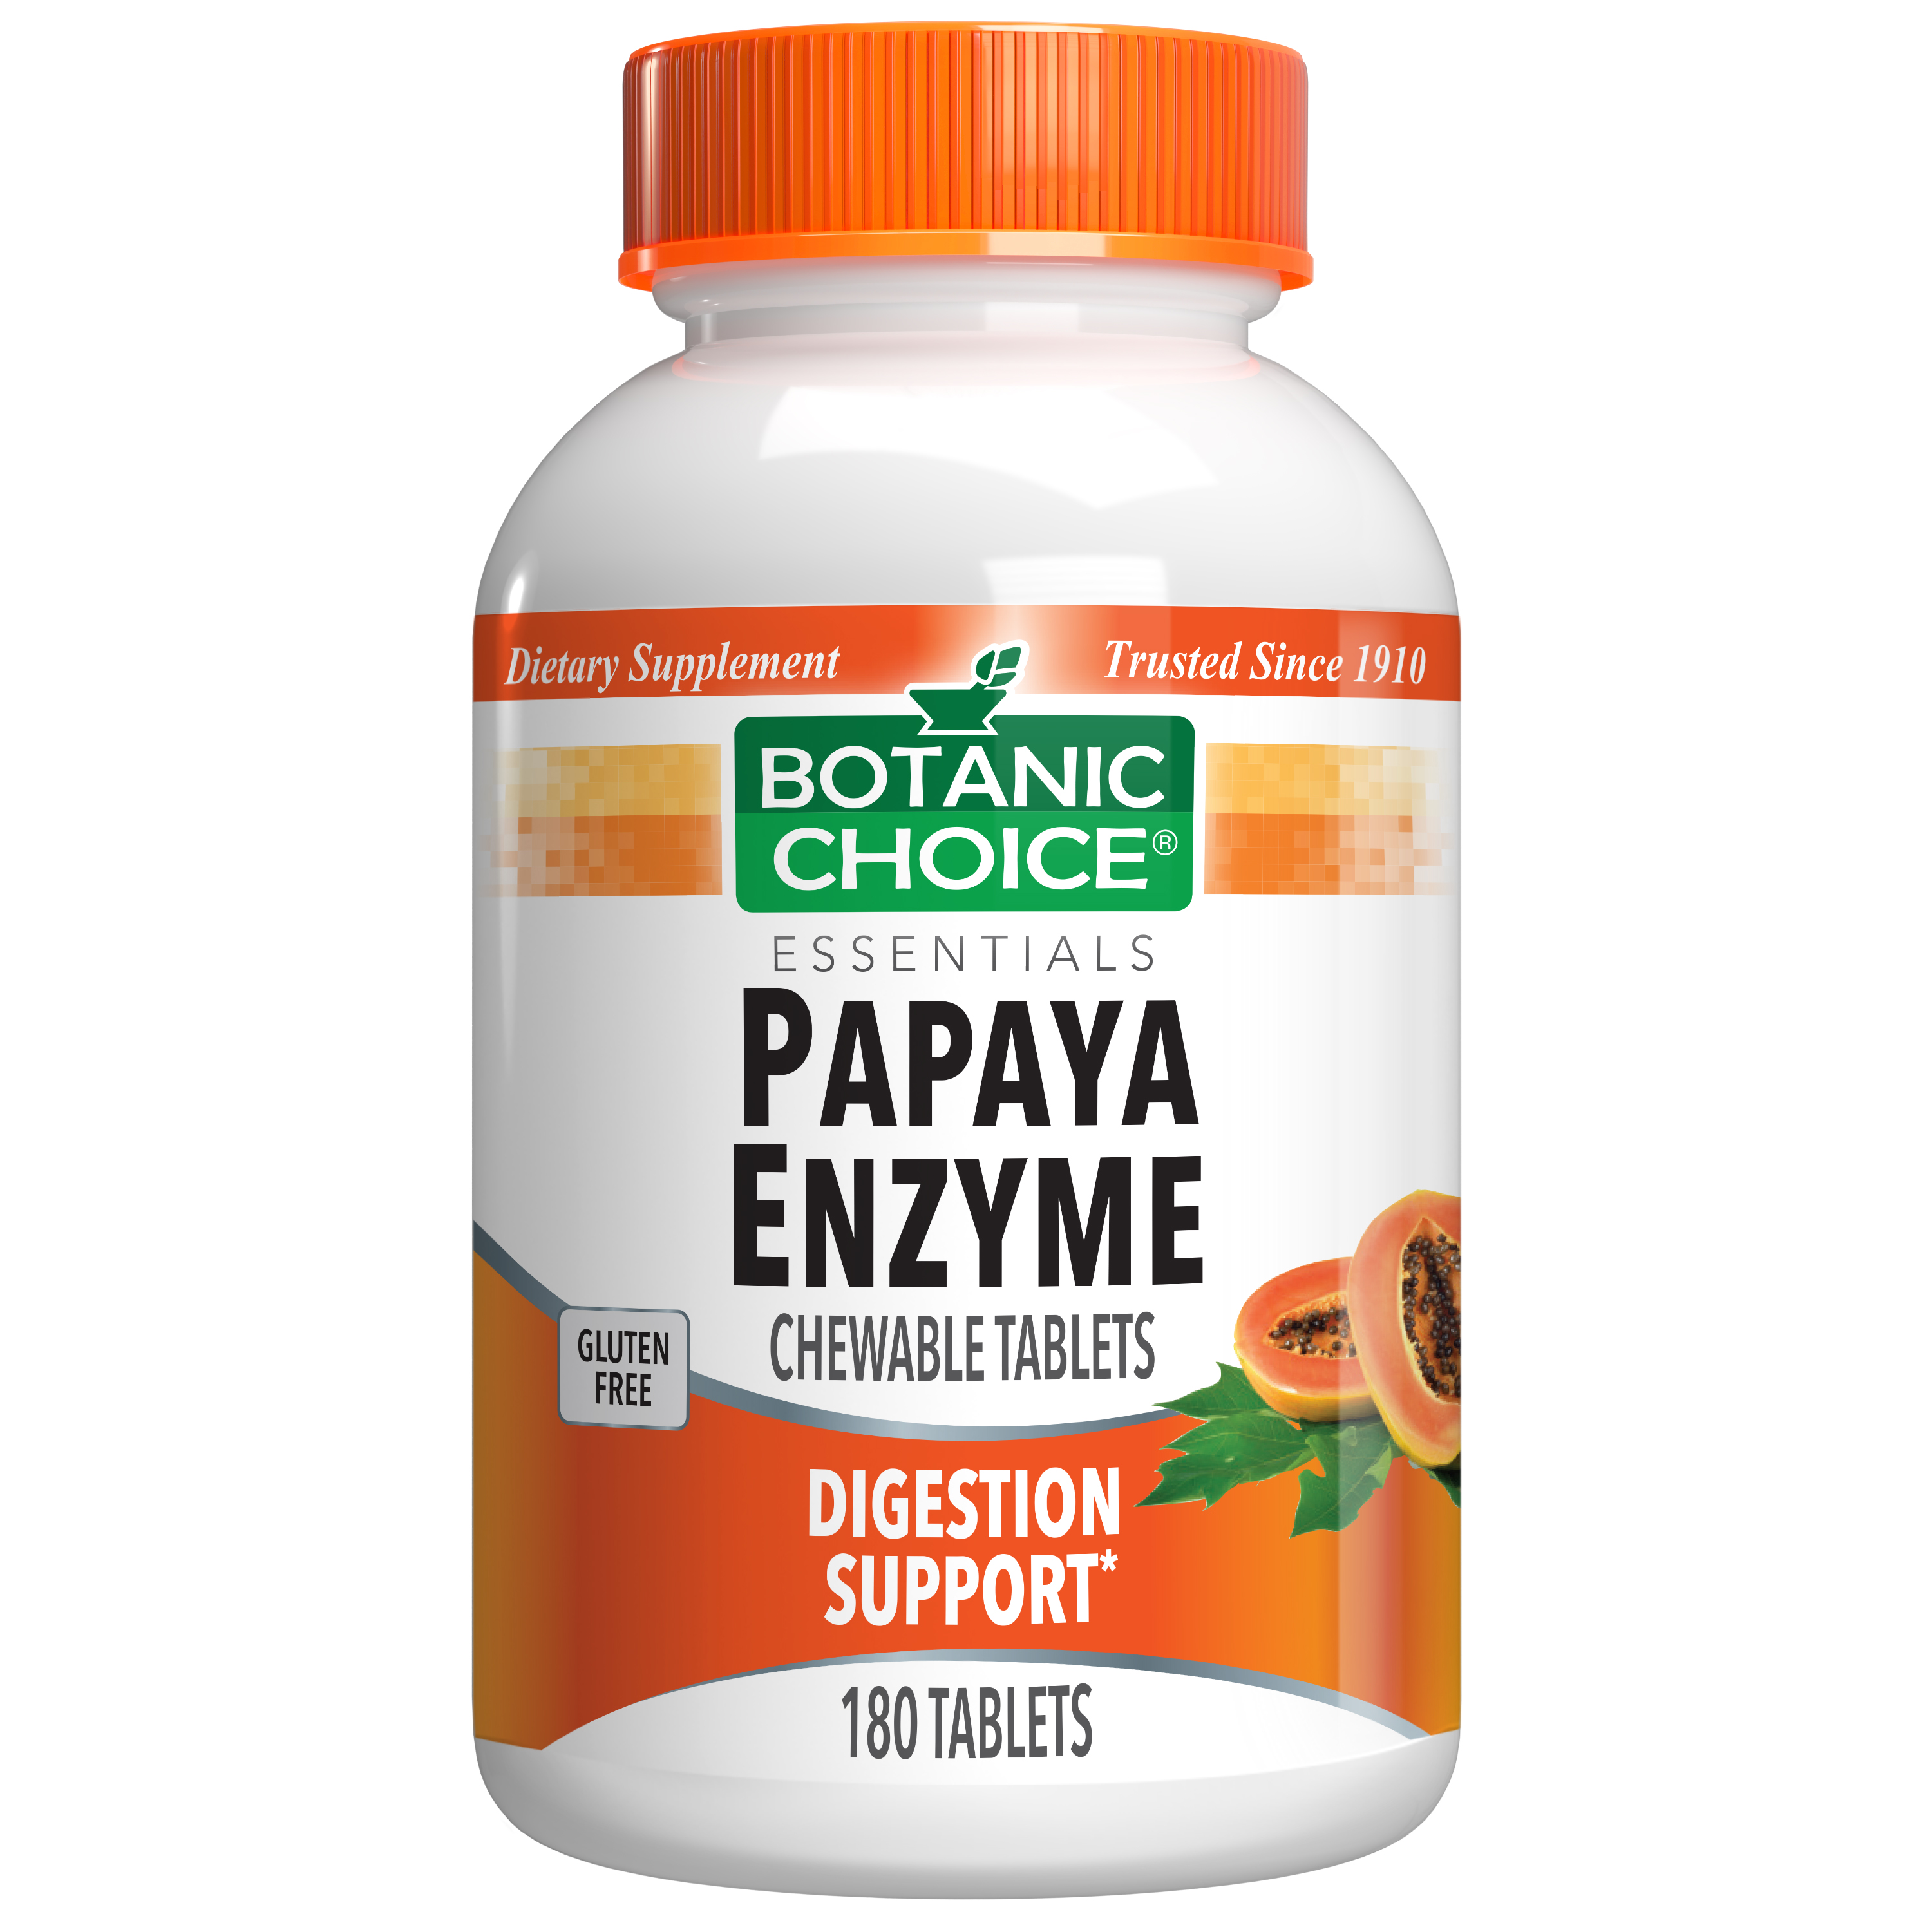 Botanic Choice Chewable Papaya Enzyme Tablets 49 mg - Digestive Support Supplement - 180 Tablets